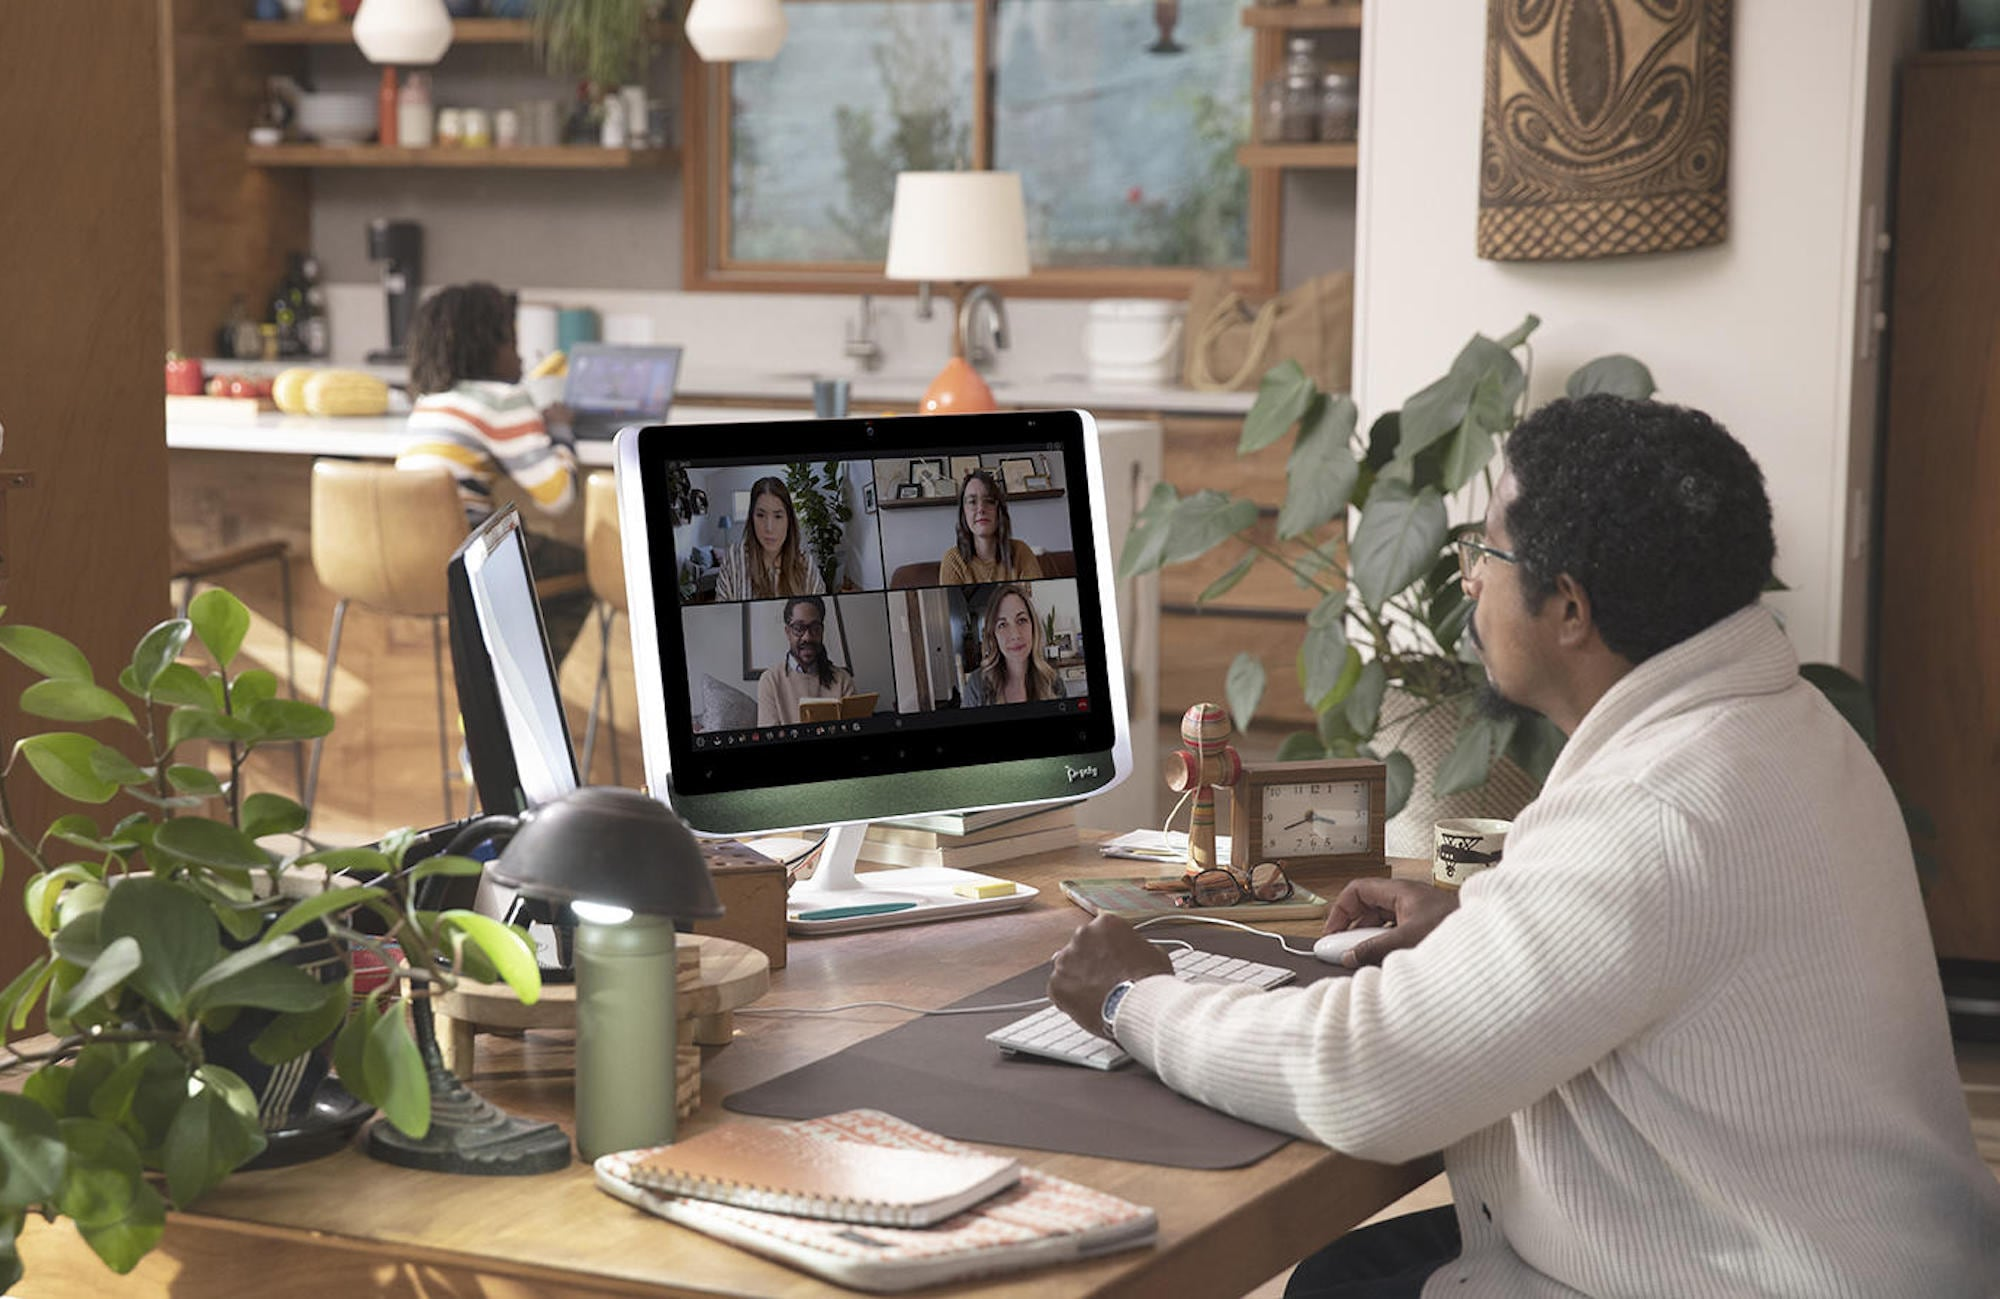 Poly's new videoconferencing monitor is a remote worker's dream